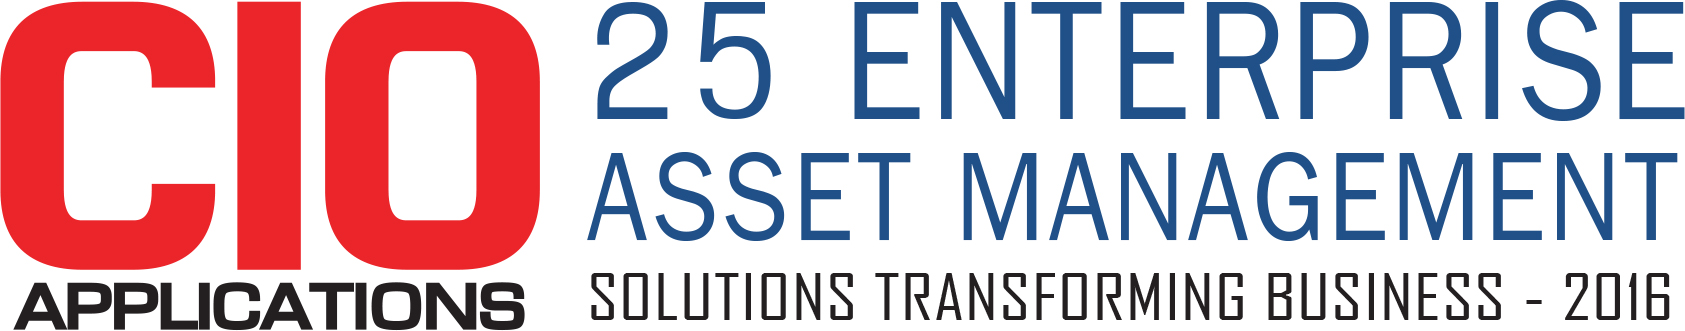 Top 25 Enterprise Asset Management Solutions Transforming Business - 2016